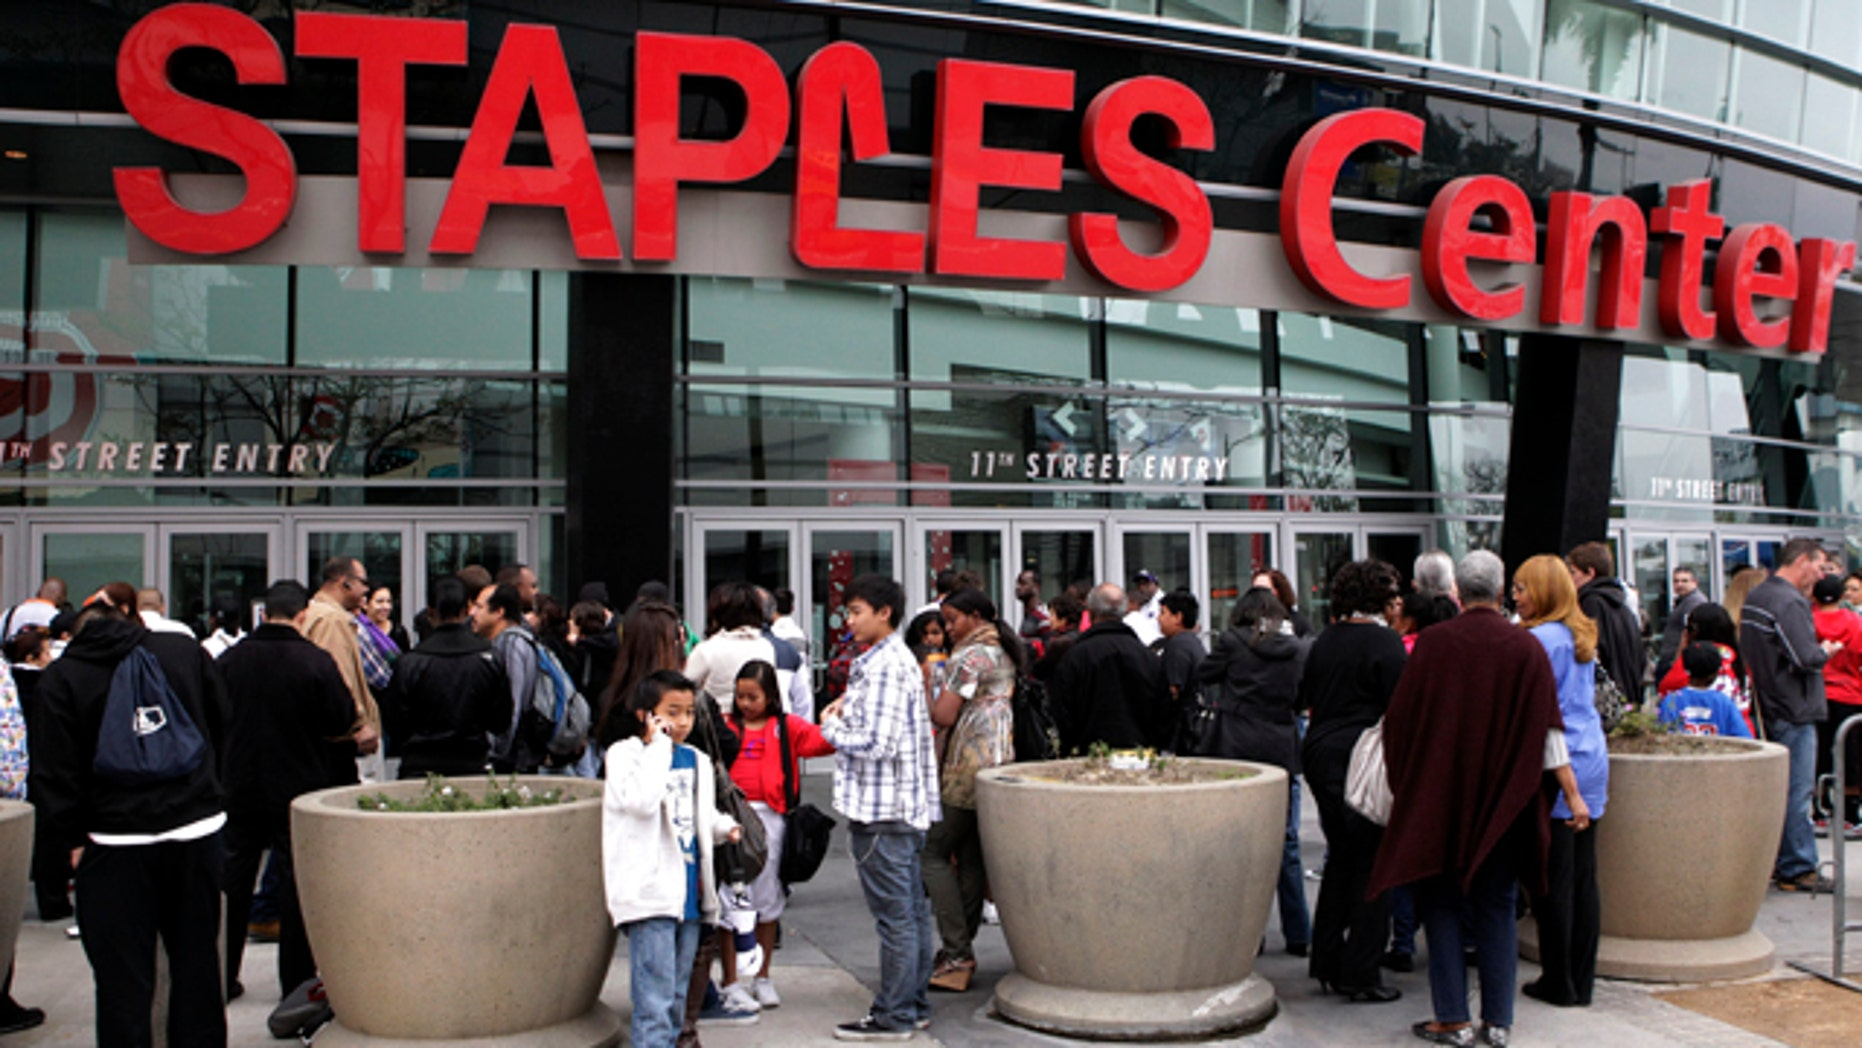 Basketball fans wait outside Staples Center before an NBA basketball game between Los Angeles Clippers and the Cleveland Cavaliers in Los Angeles, Saturday, March 19, 2011. Police engaged in a roughly 20-minute standoff with a knife-wielding man on the floor of Los Angeles' Staples Center. (AP Photo)